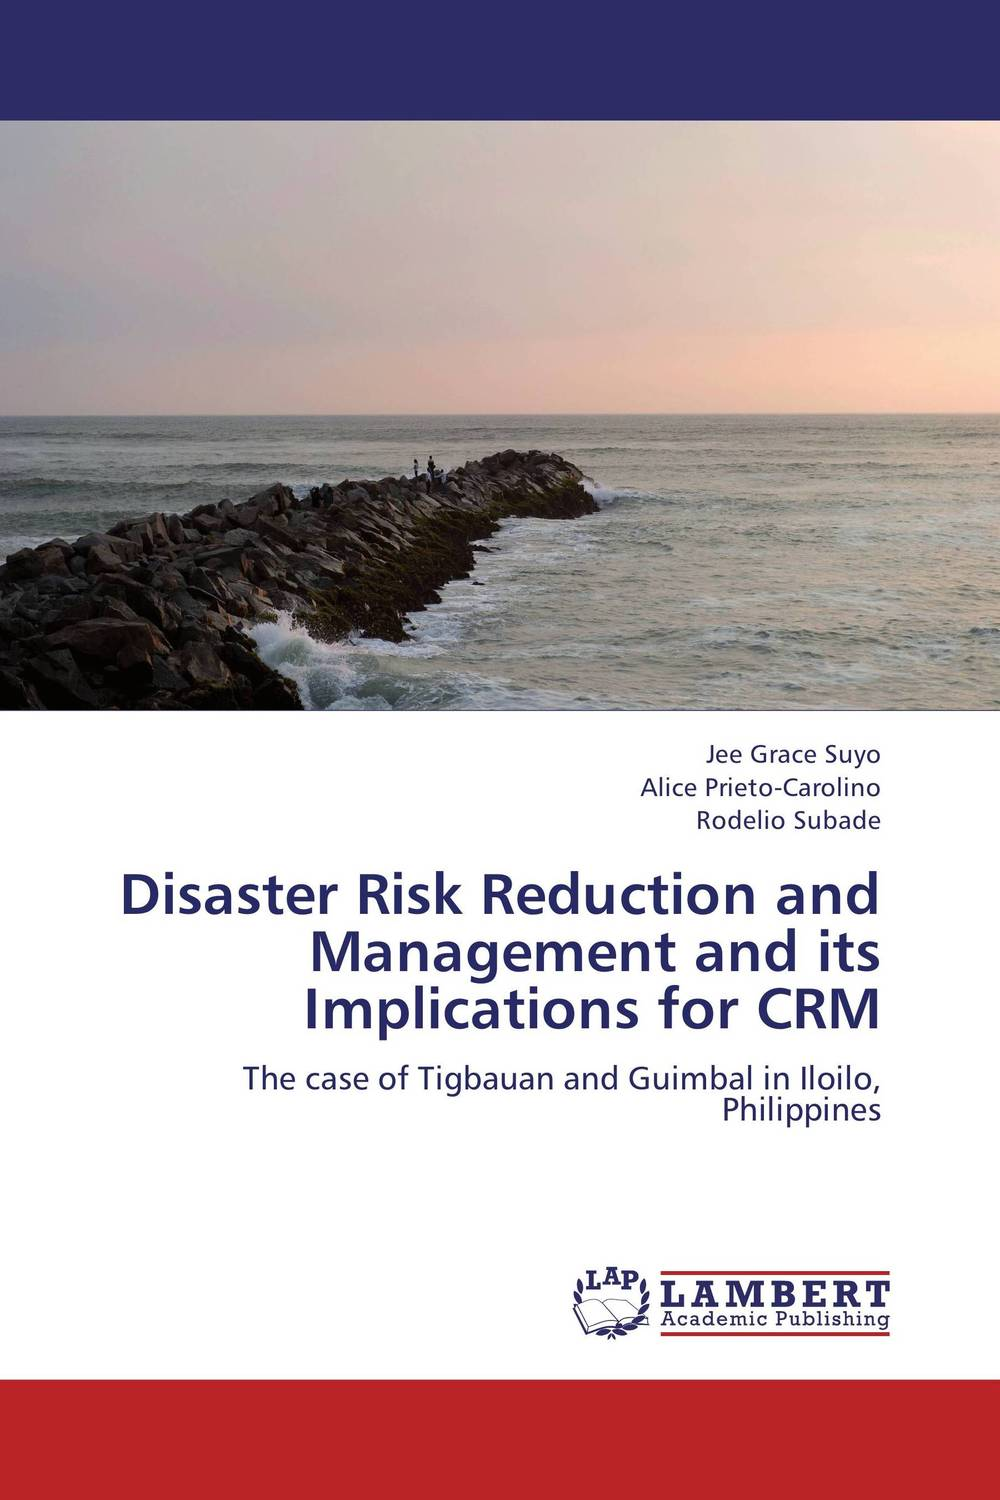 Disaster Risk Reduction and Management and its Implications for CRM ballis stacey recipe for disaster